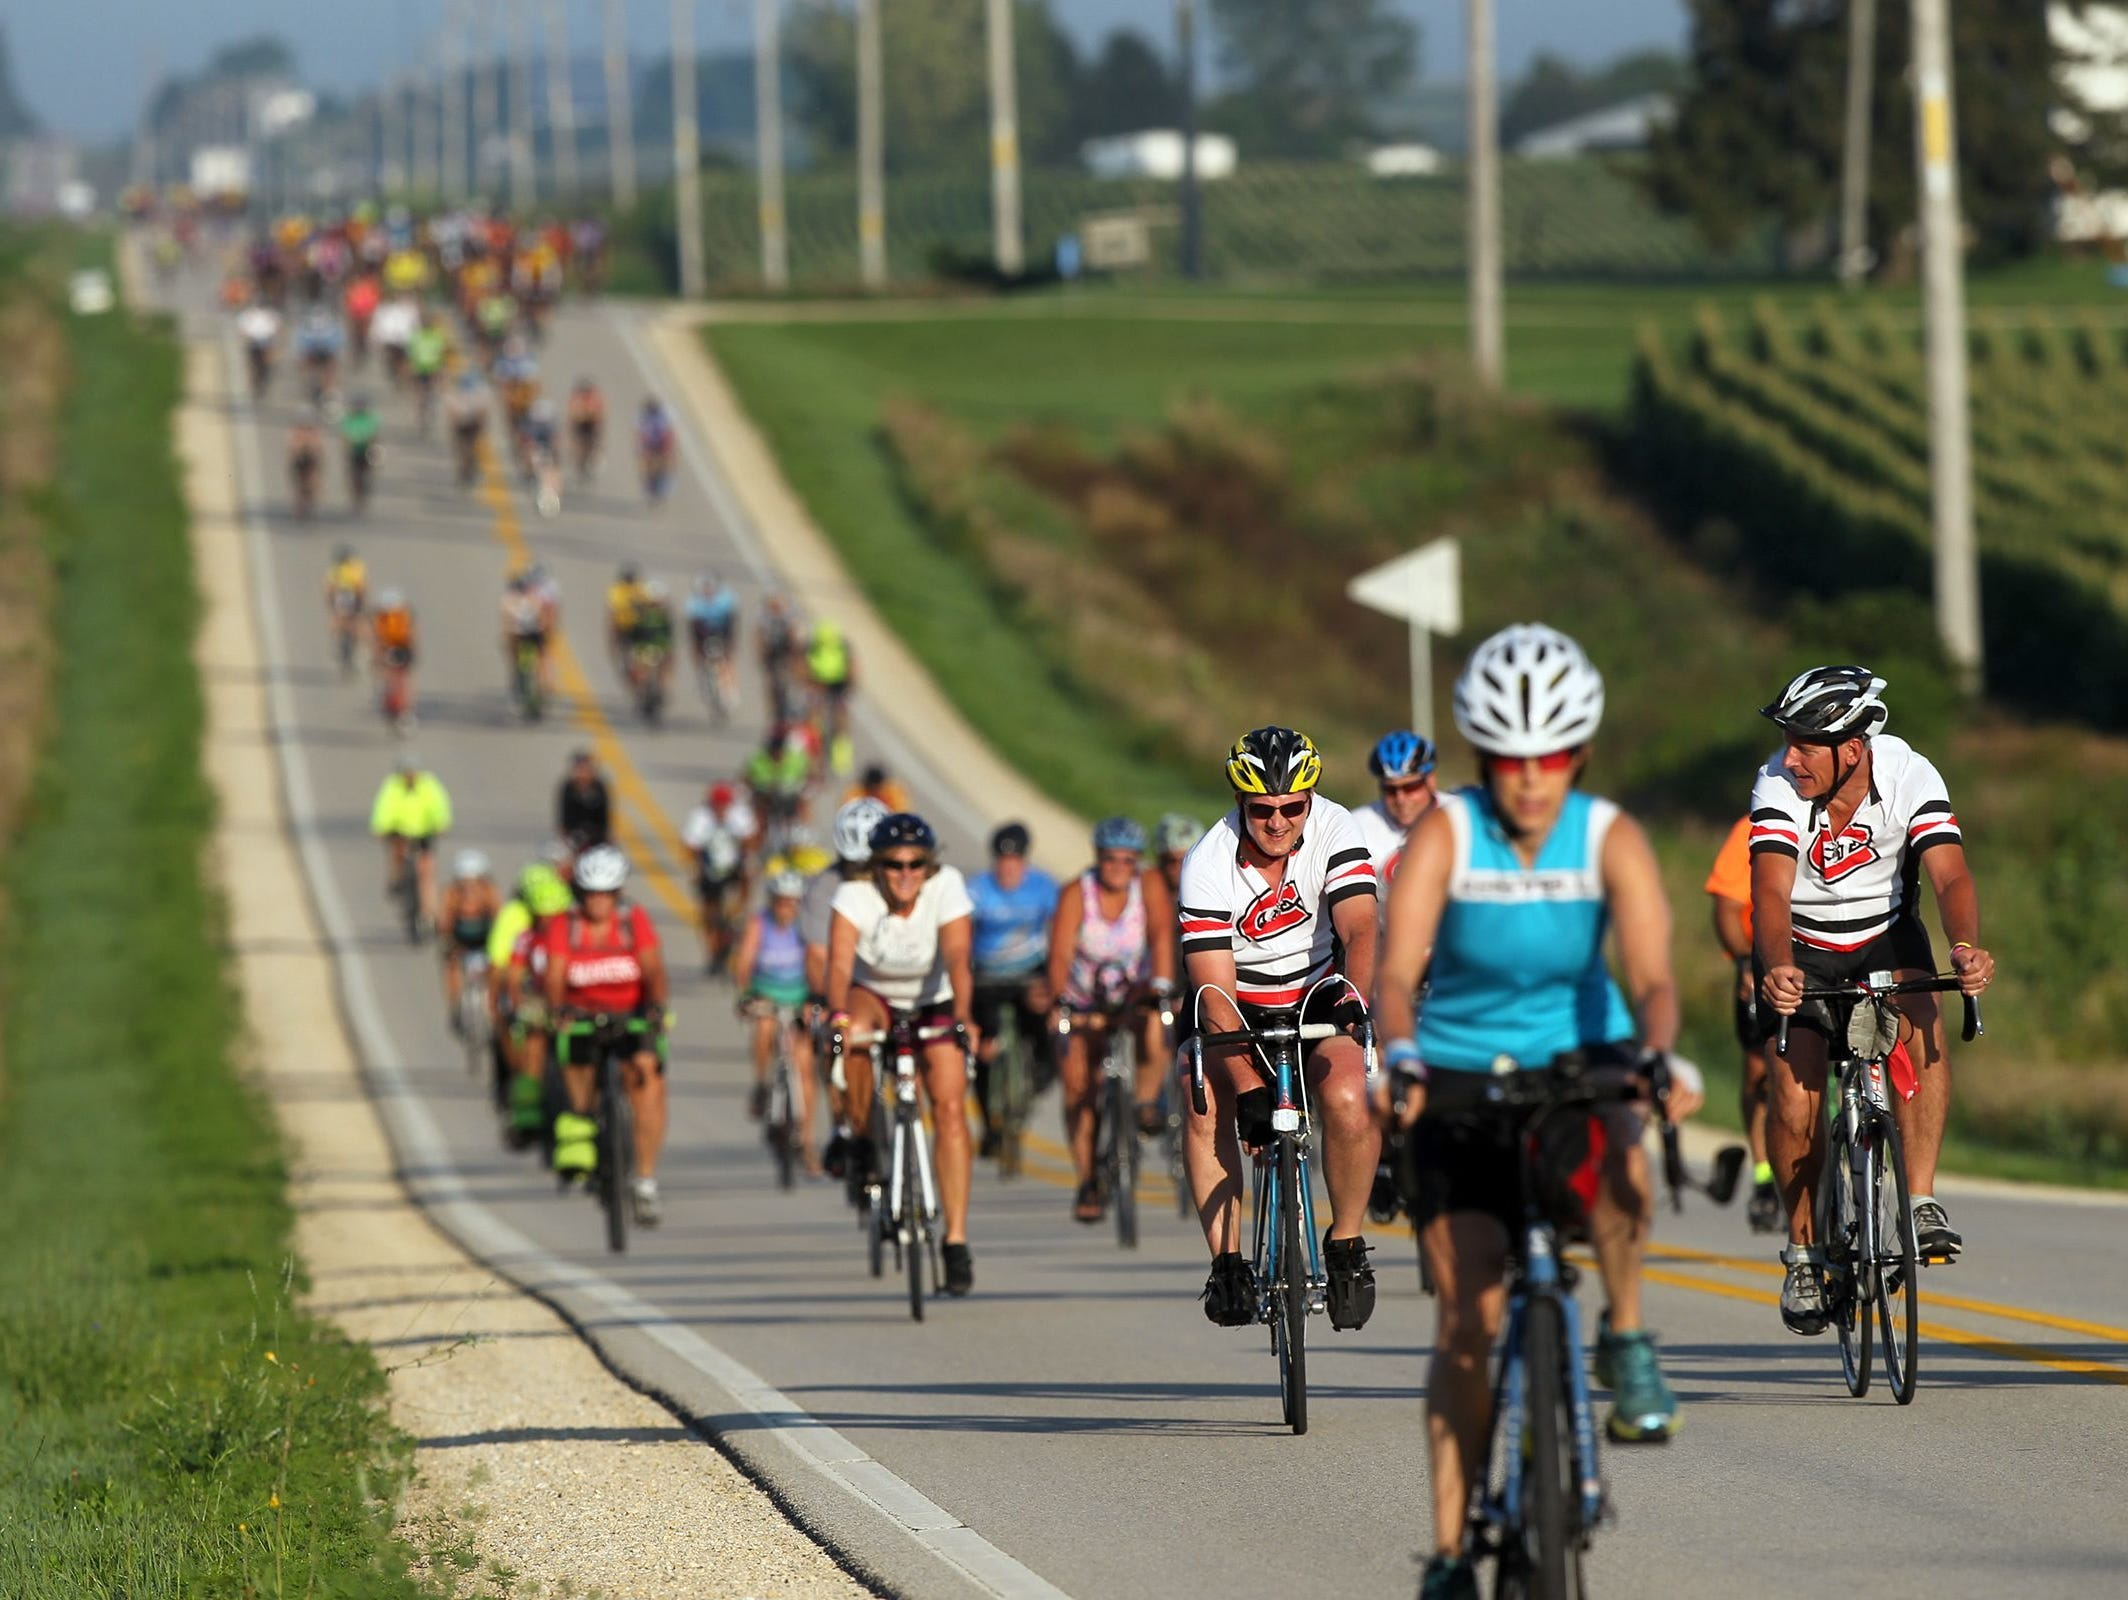 Gear up for RAGBRAI with exclusive Insider savings.